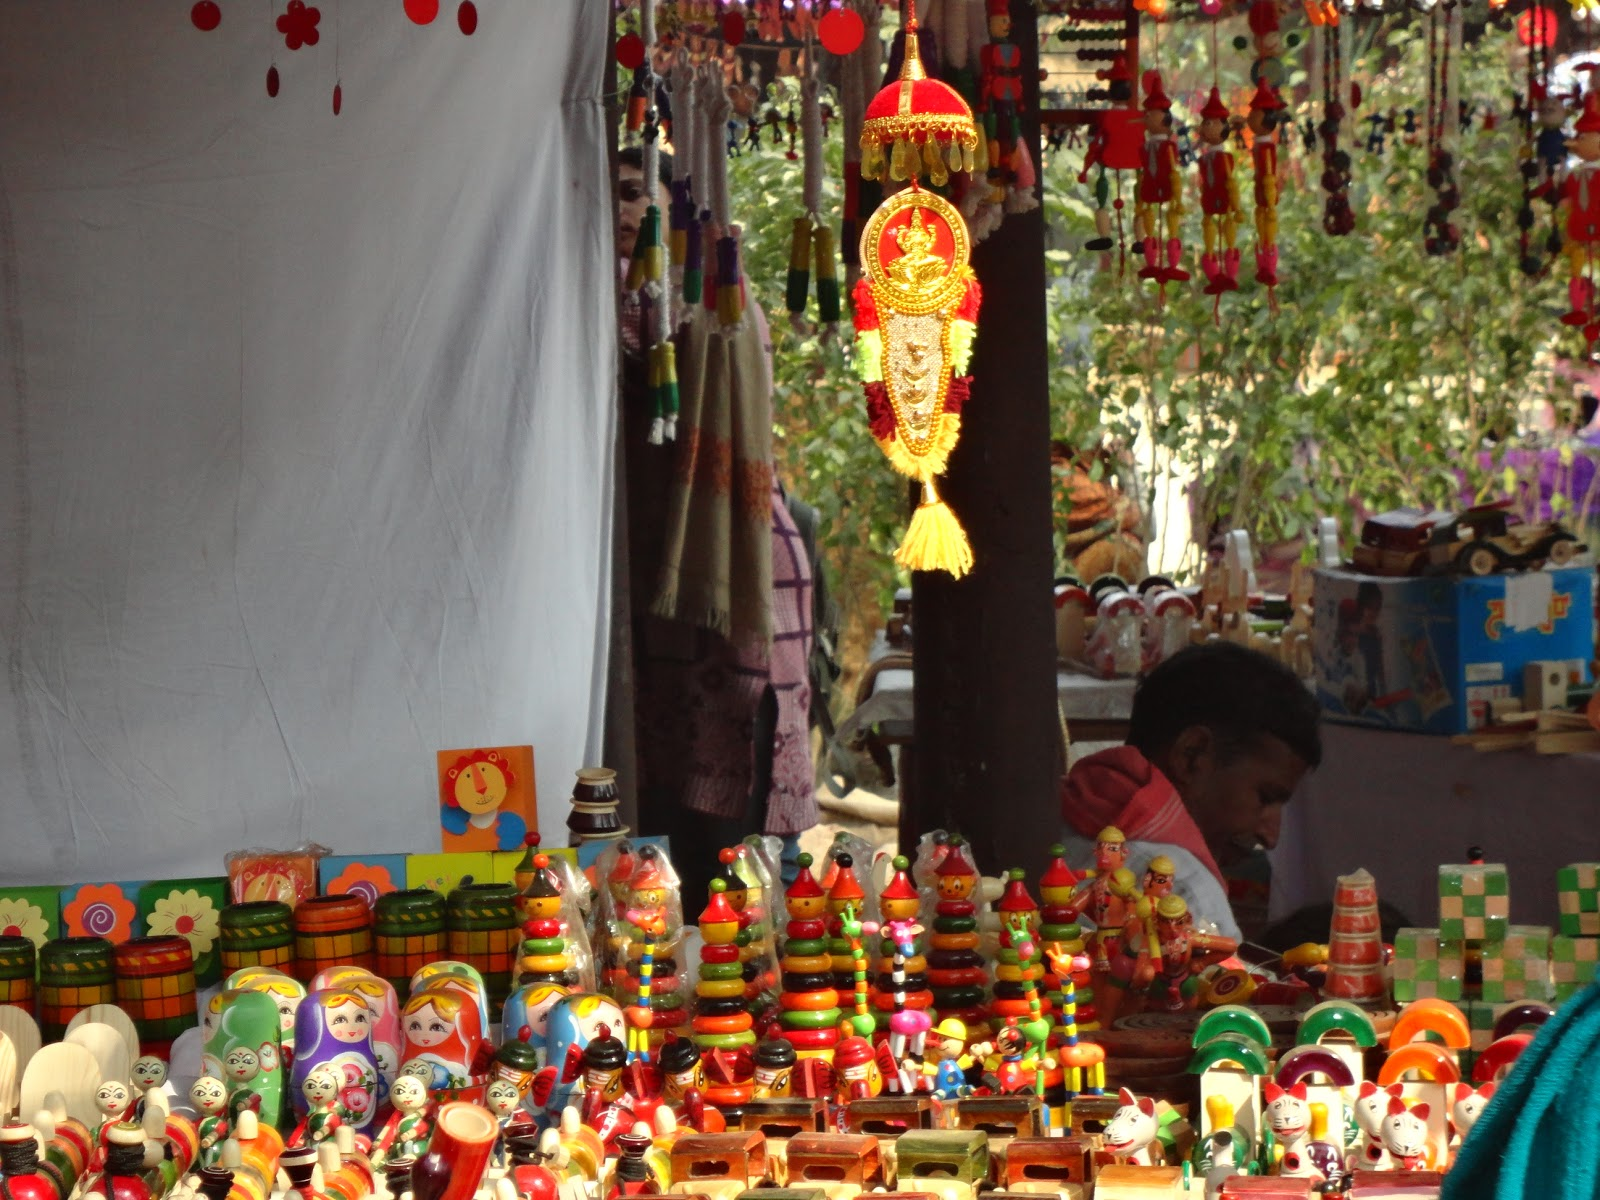 Wooden Toys at Surajkund Crafts Mela,India